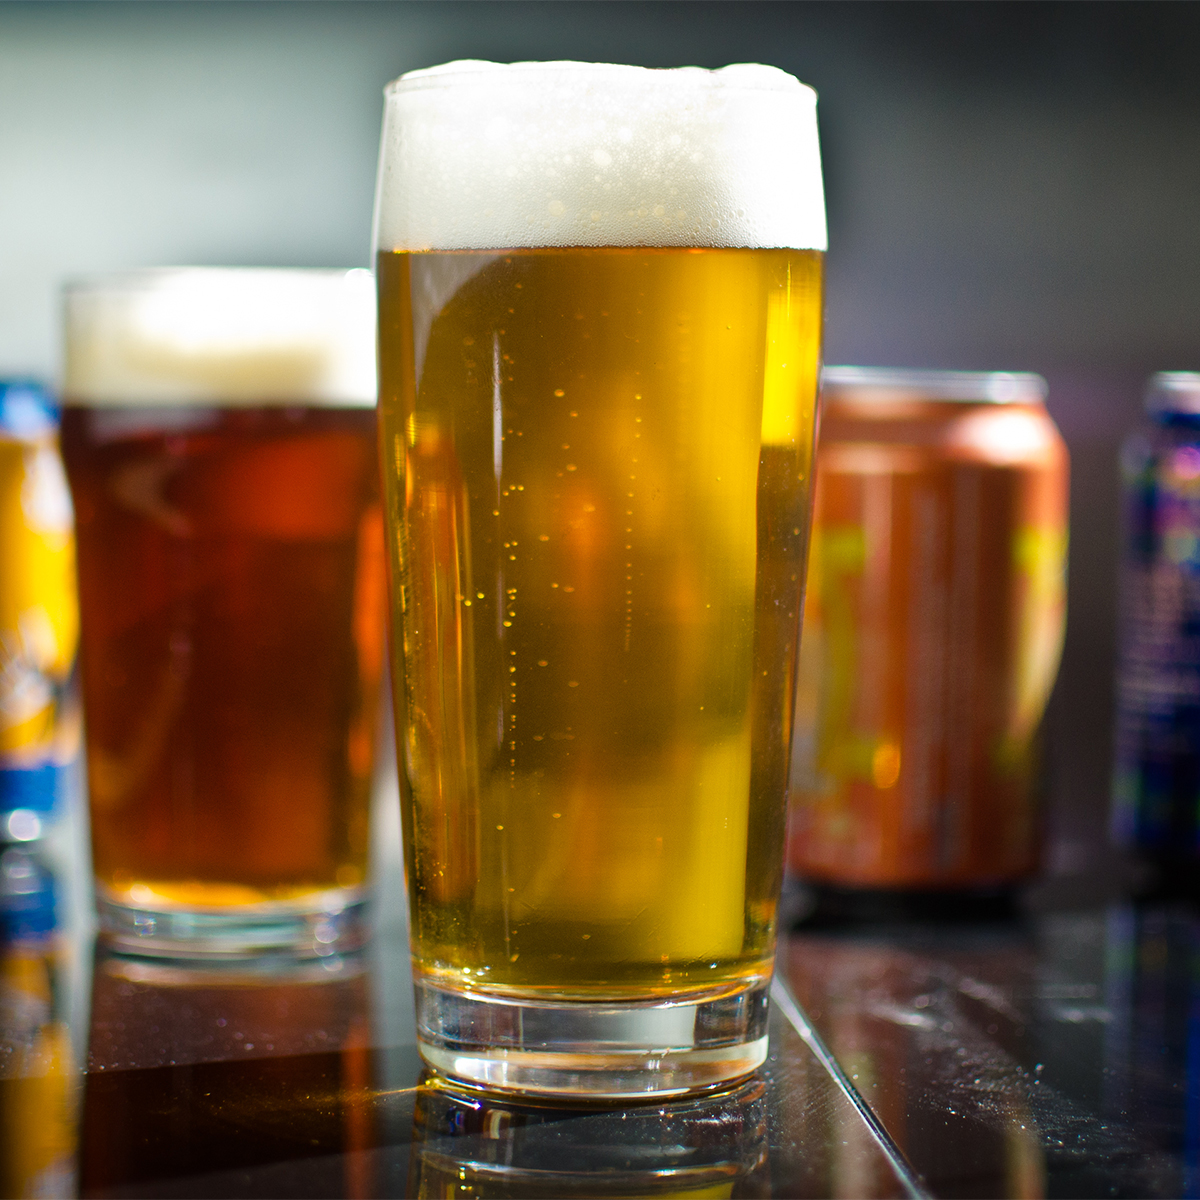 """If you find yourself asking, """"how long will my beer stay fresh after it is brewed, fermented, in package, or on shelves?"""" then it's time to formalize your shelf life program. Check out our new member resource: Establishing and Ensuring Beer Shelf Life  https://t.co/6cUkbwGaVS https://t.co/XzasJLXvMR"""